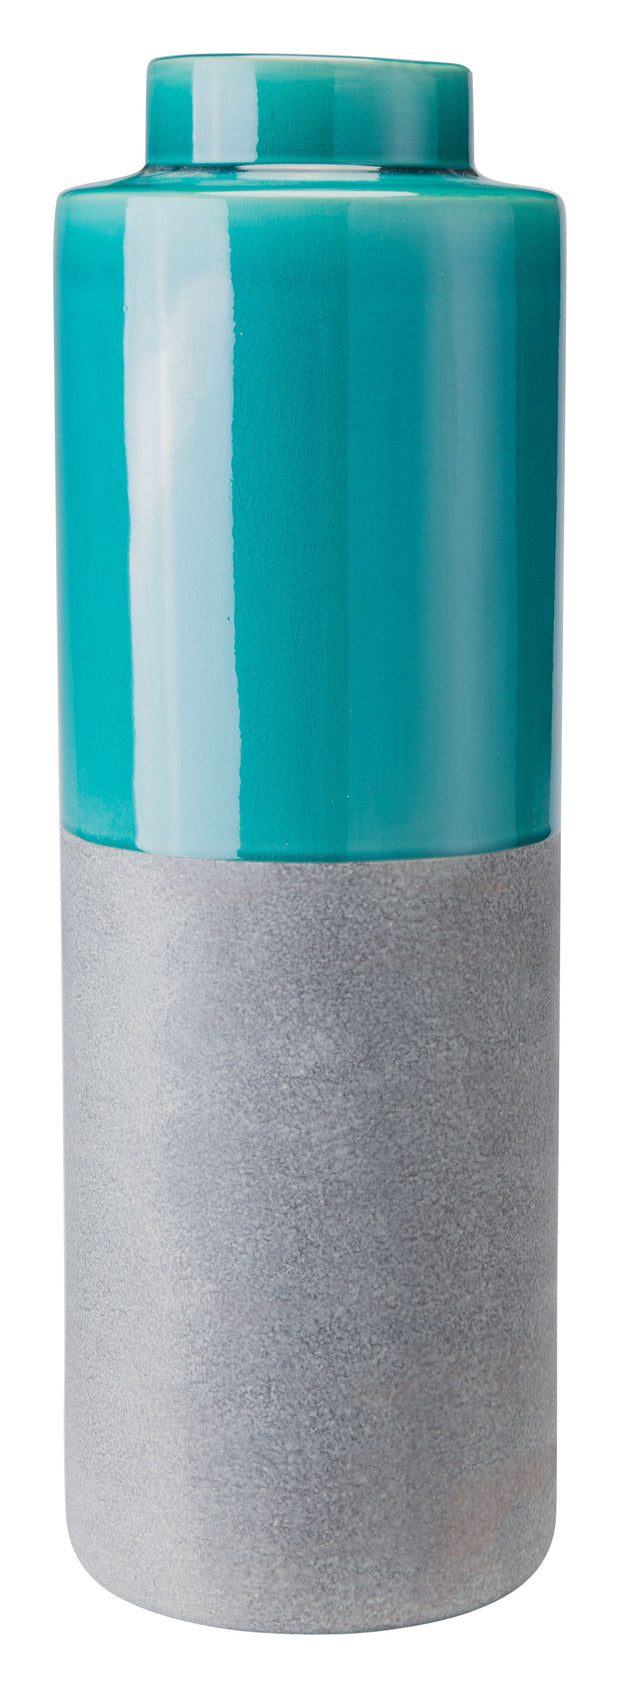 Stoneware Bottle Large Teal And Gray